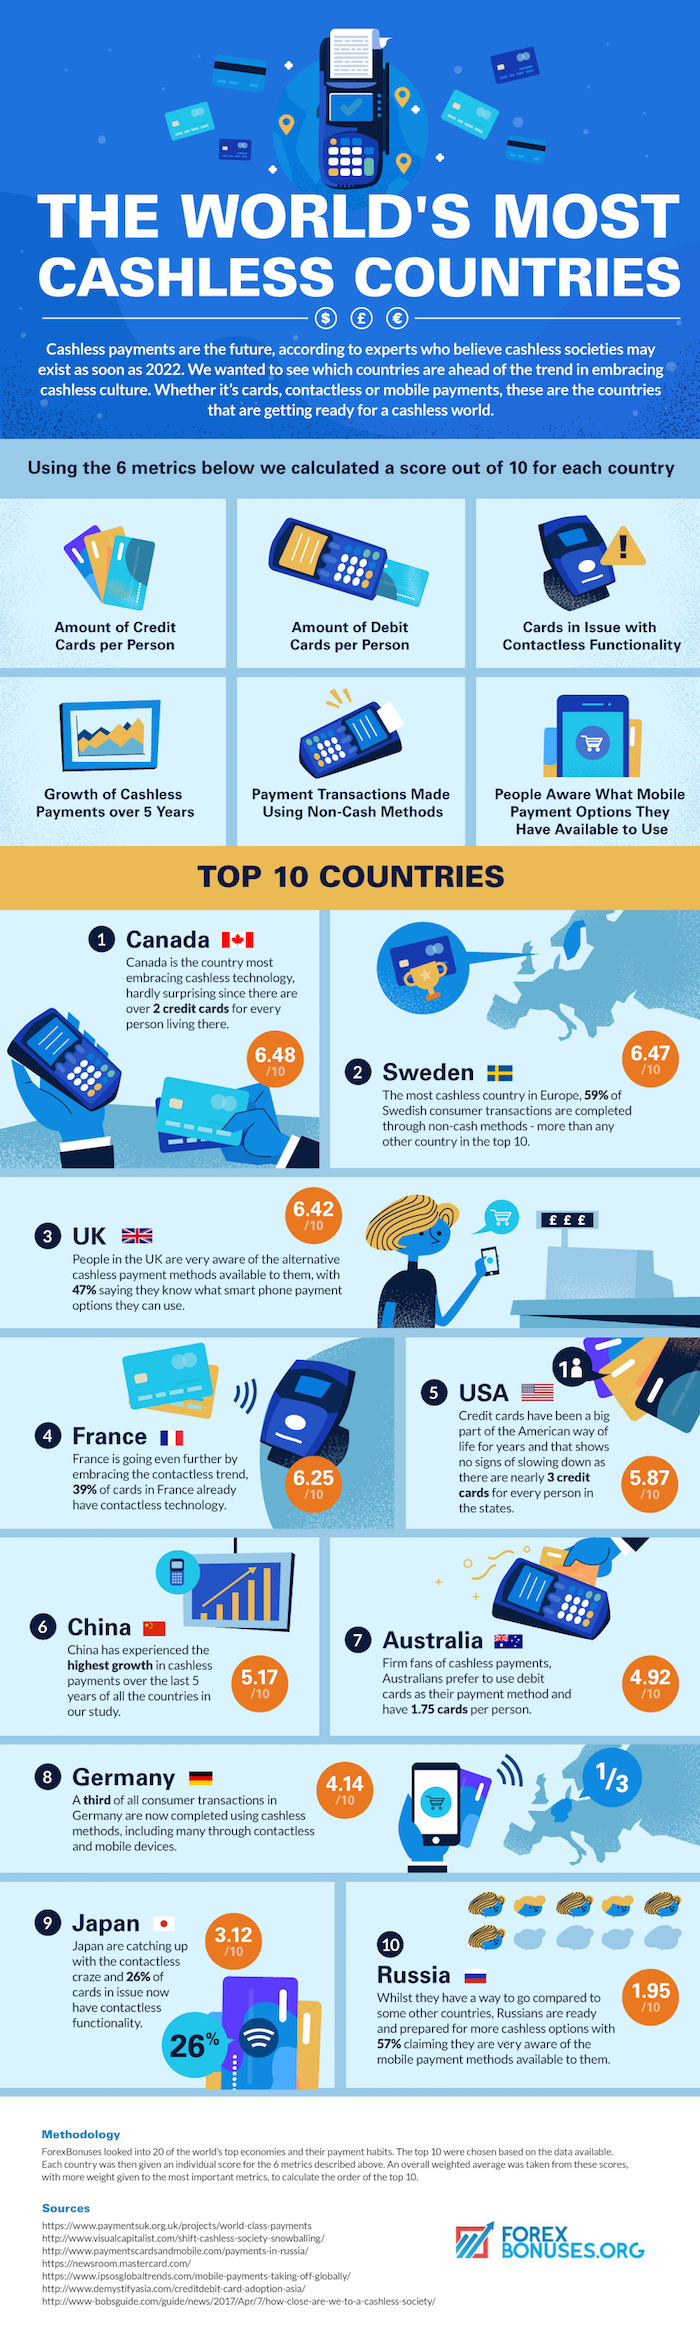 Cashless countries